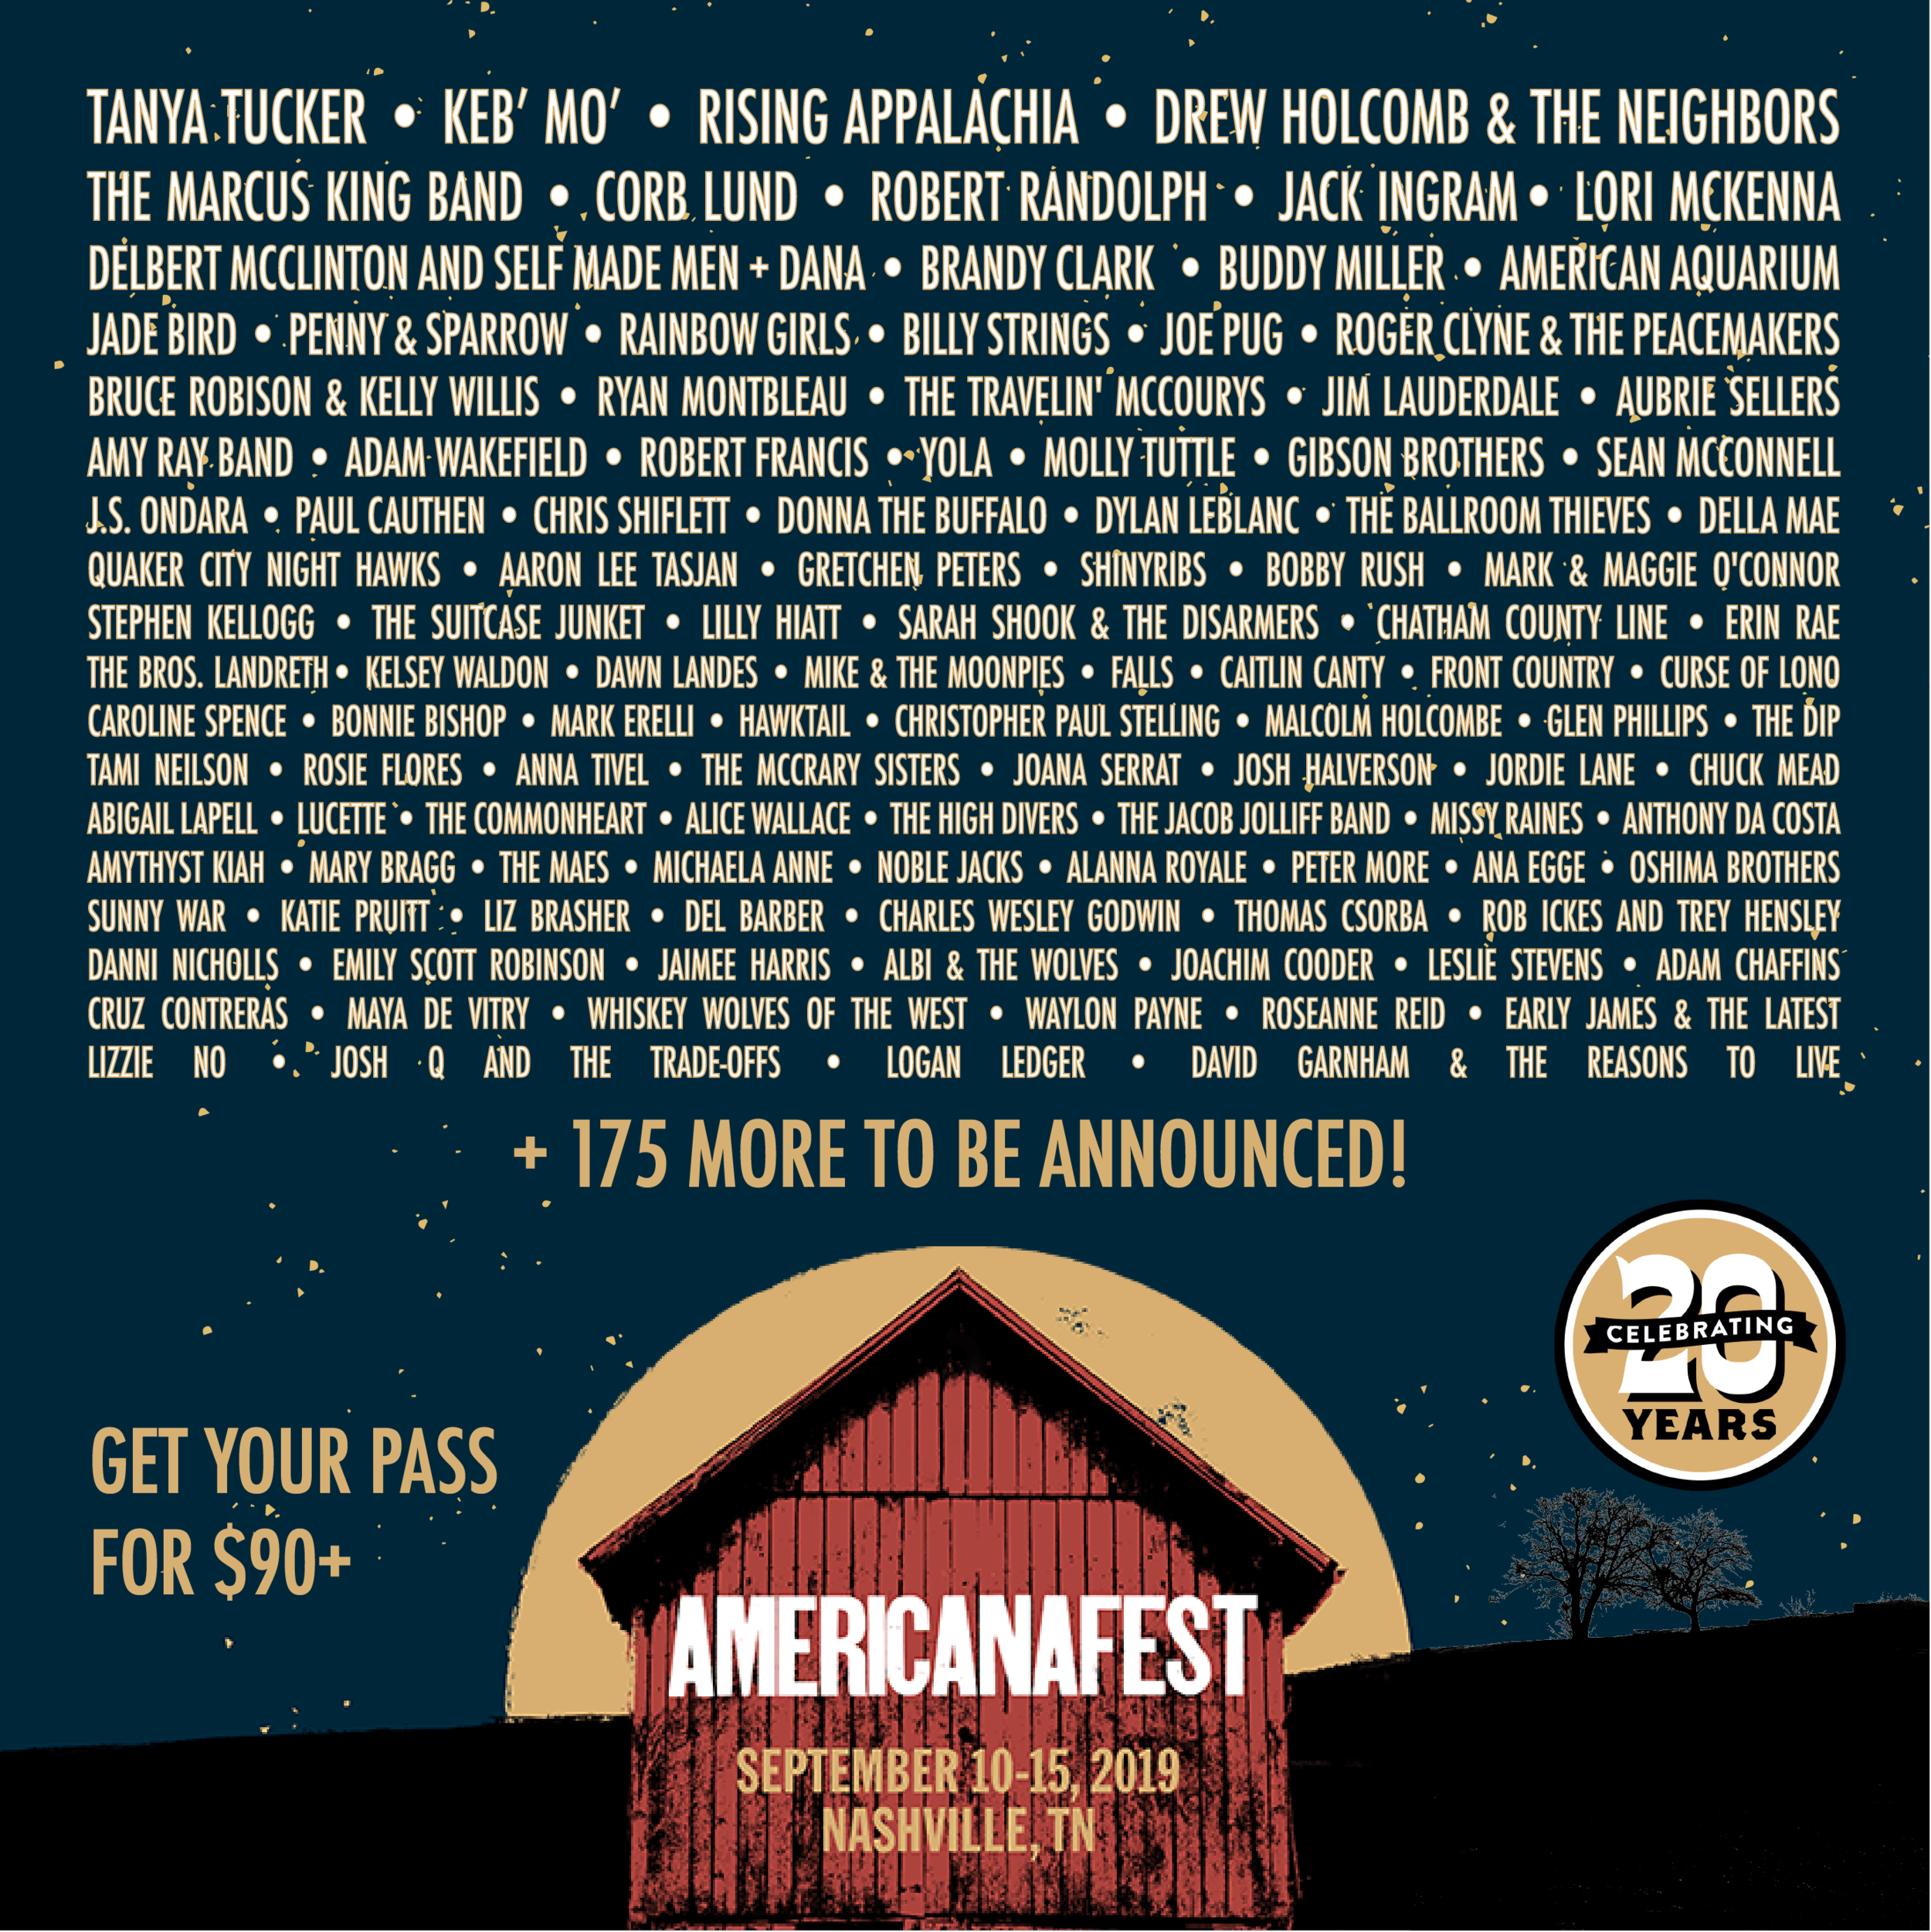 americanafest_lineup_5-30-19_announcement-01-min.png